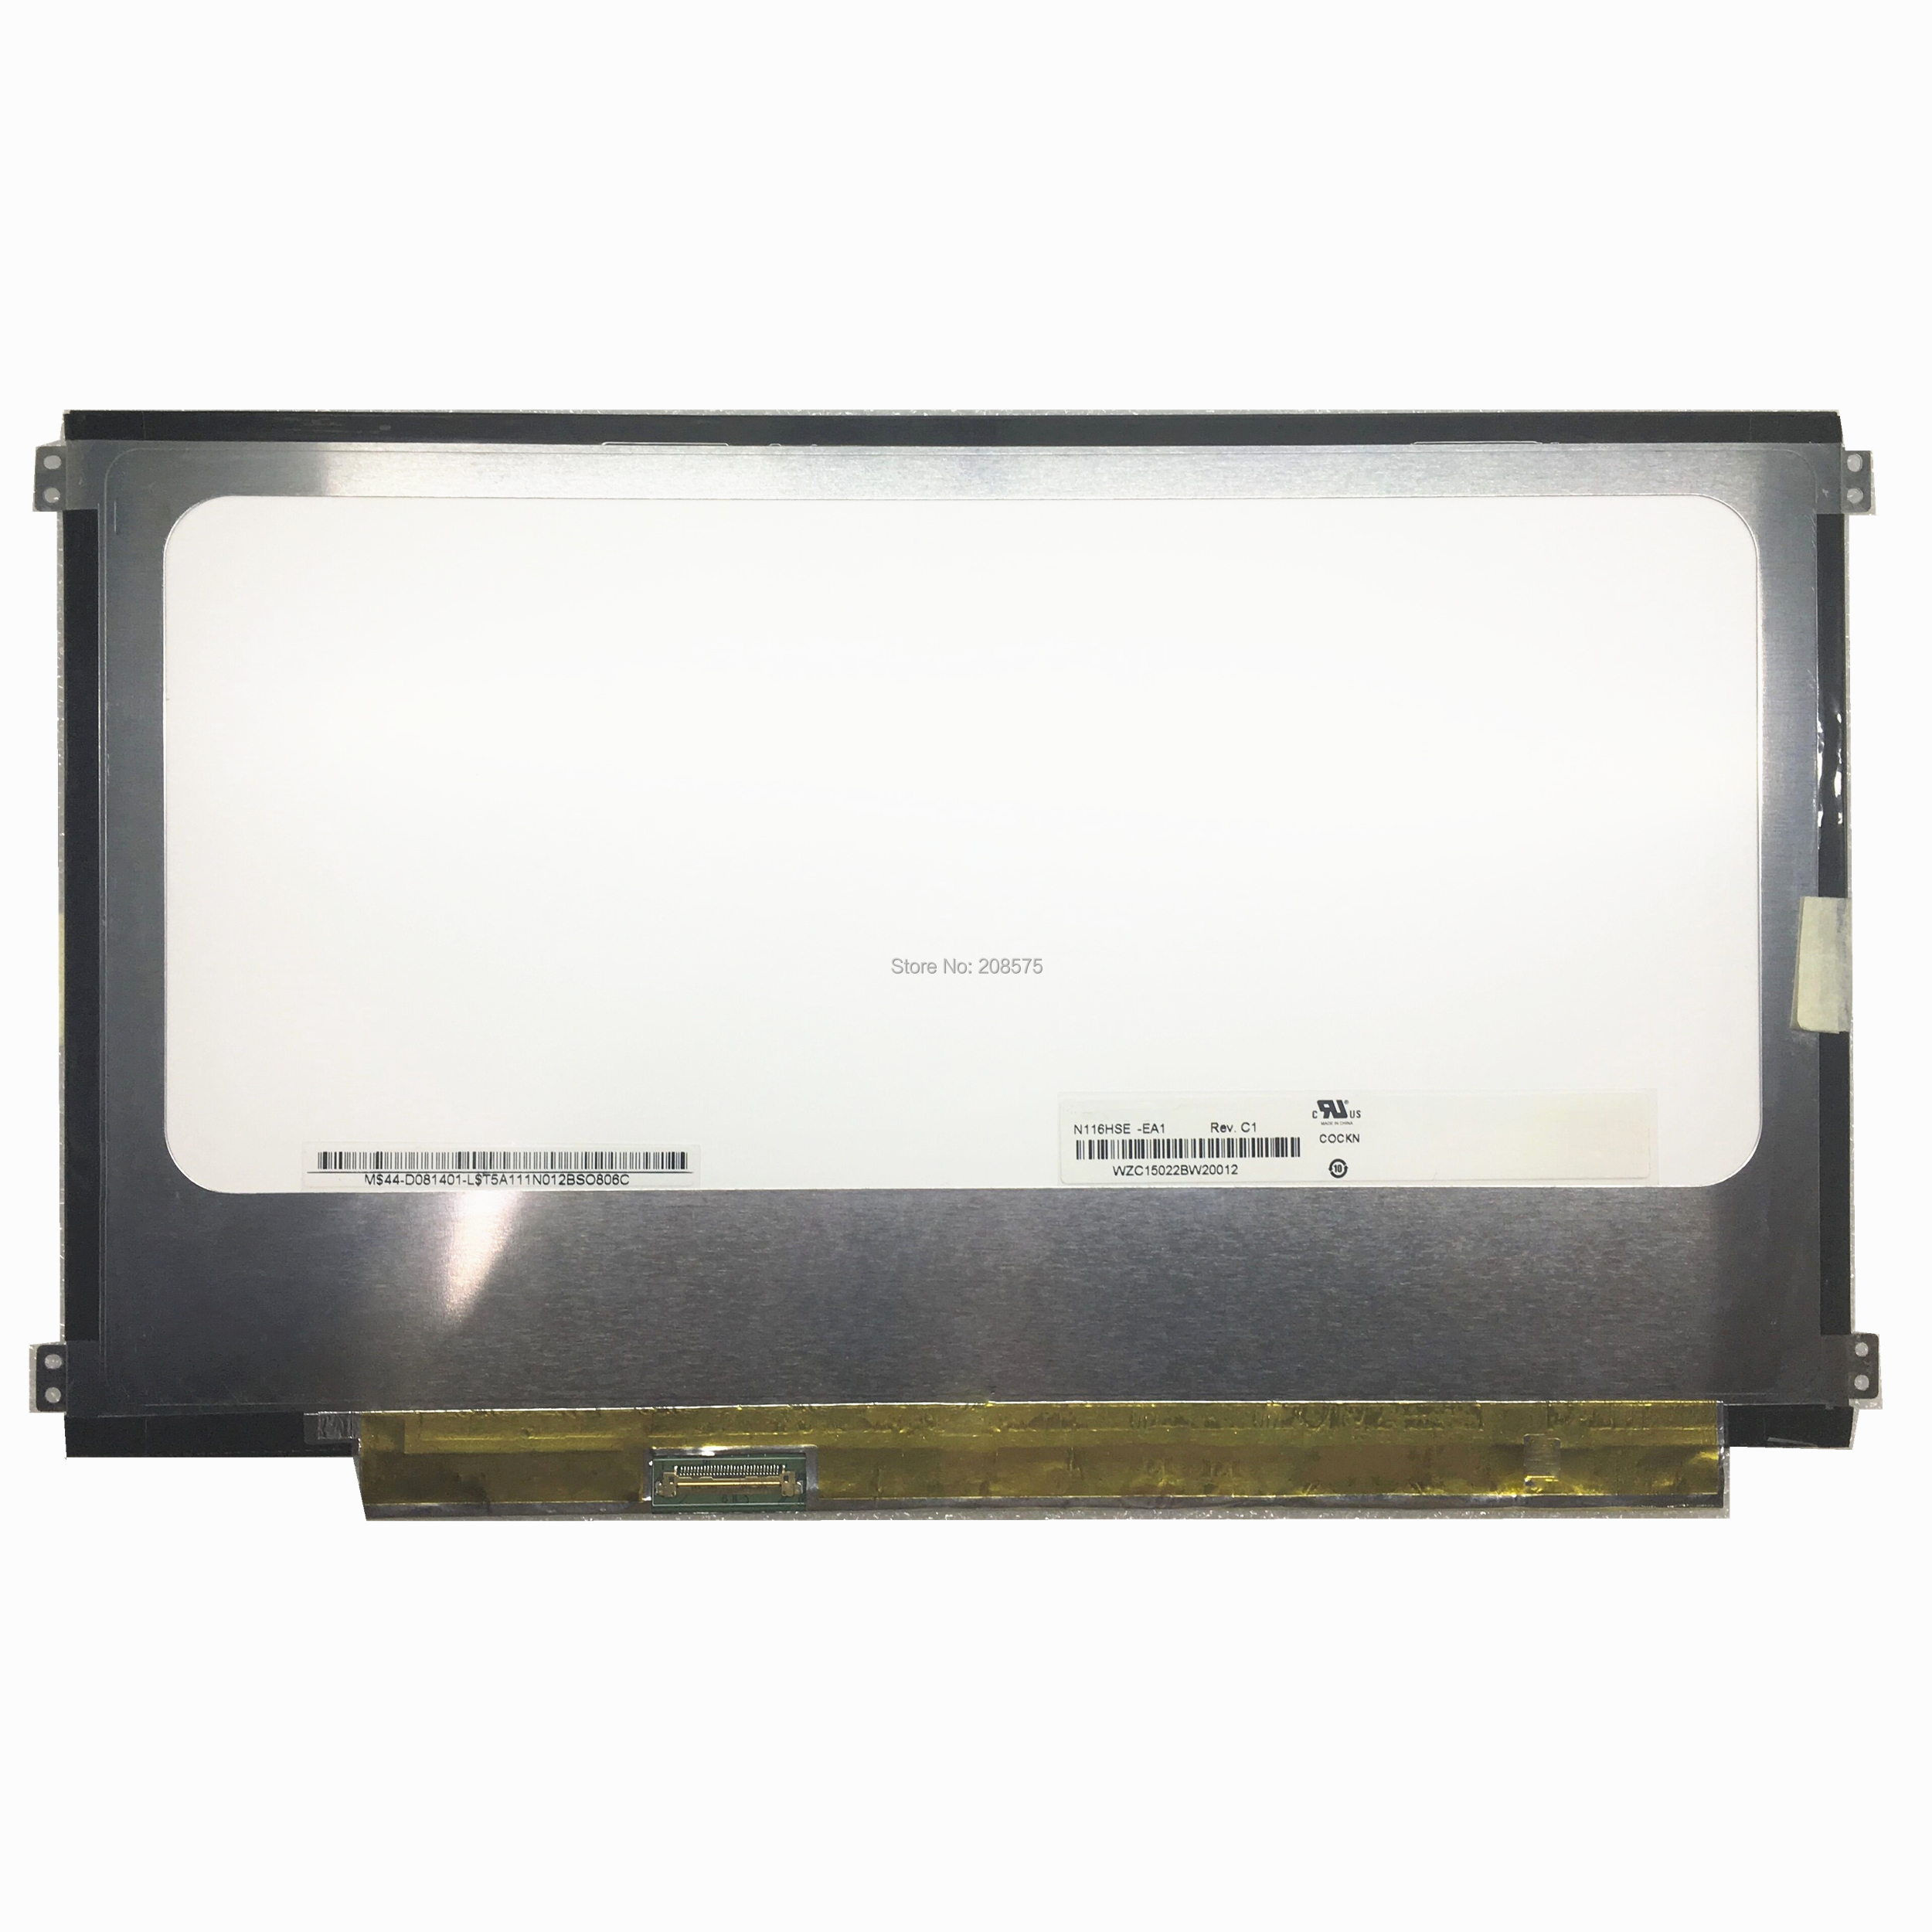 Free Shipping N116HSE EA1 N116HSE EA1 1920 1080 IPS Laptop Lcd Led Screen for ASUS Zenbook